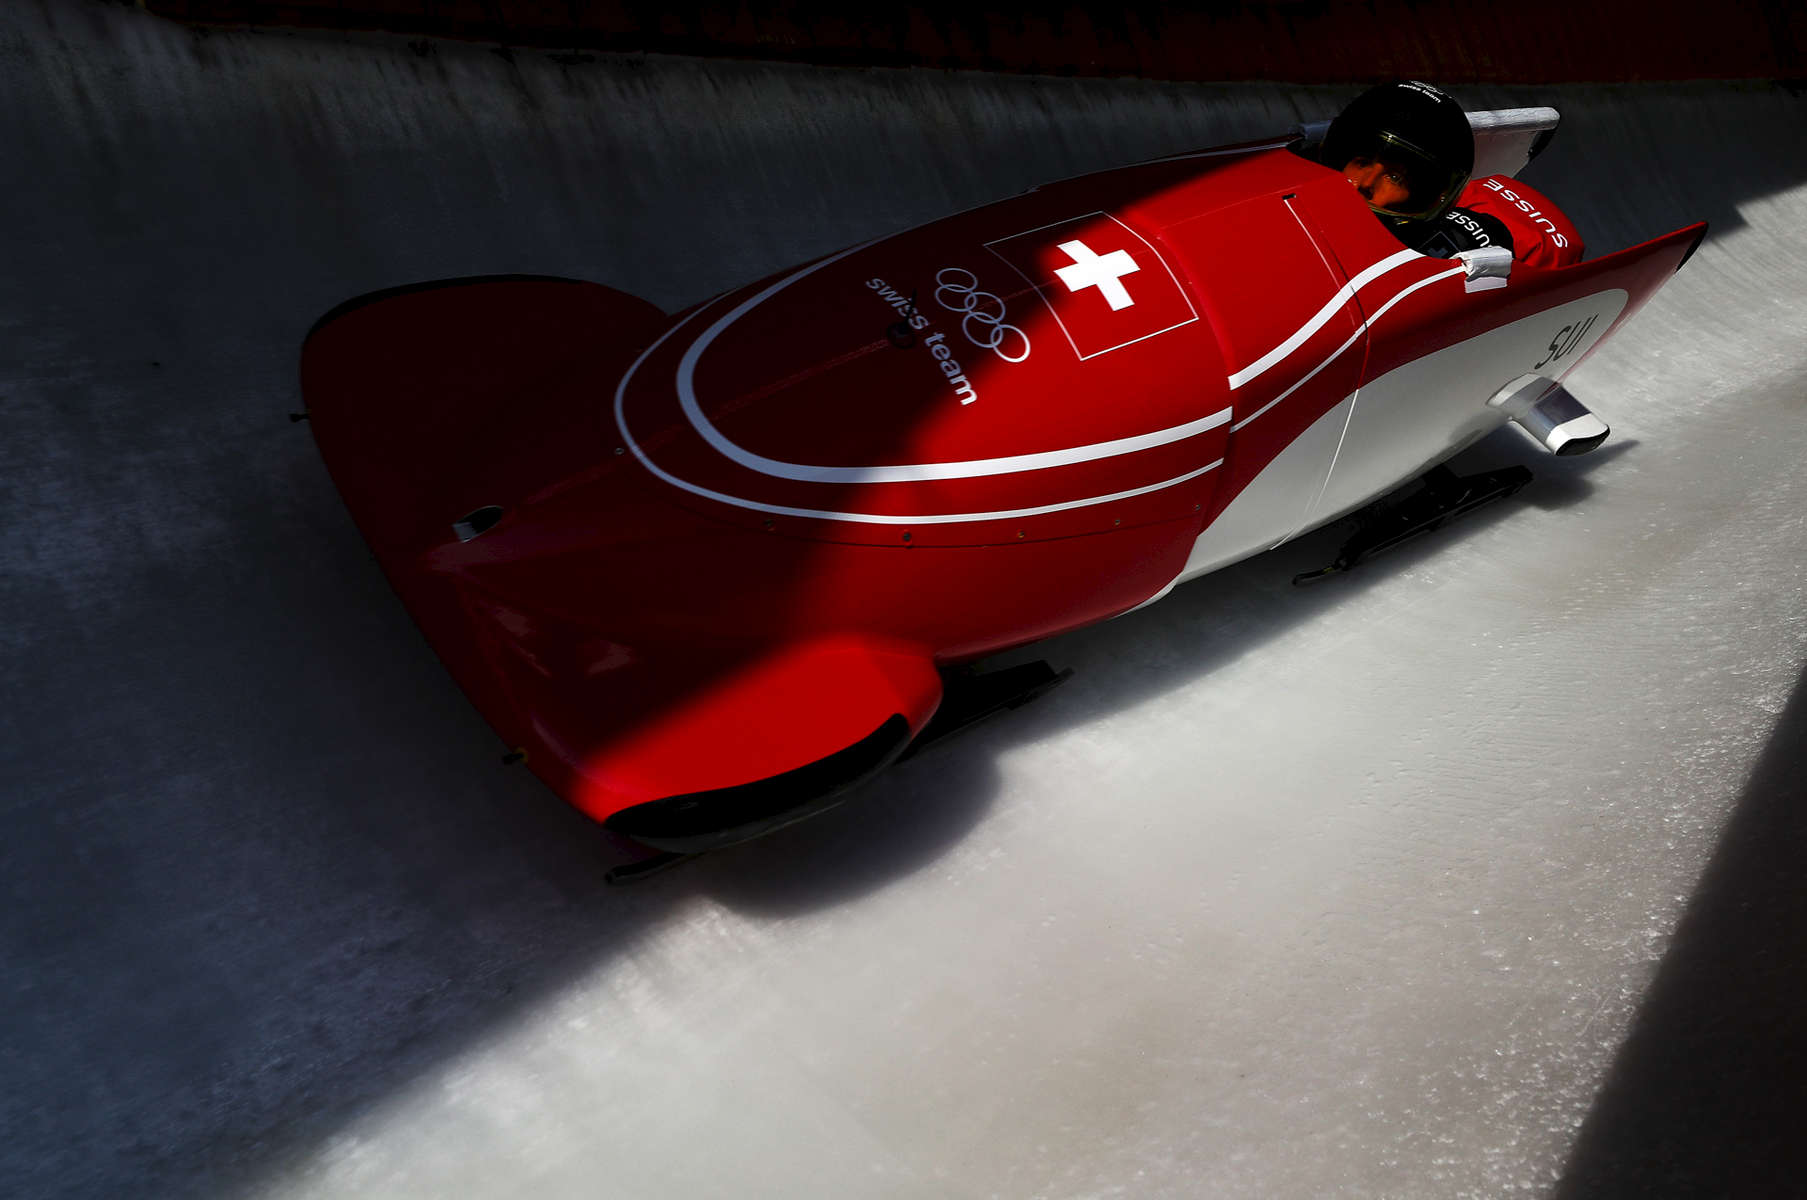 Sabina Hafner of Switzerland in action during Bobsleigh practice ahead of the PyeongChang 2018 Winter Olympic Games at Olympic Sliding Centre on February 8, 2018 in Pyeongchang-gun, South Korea.